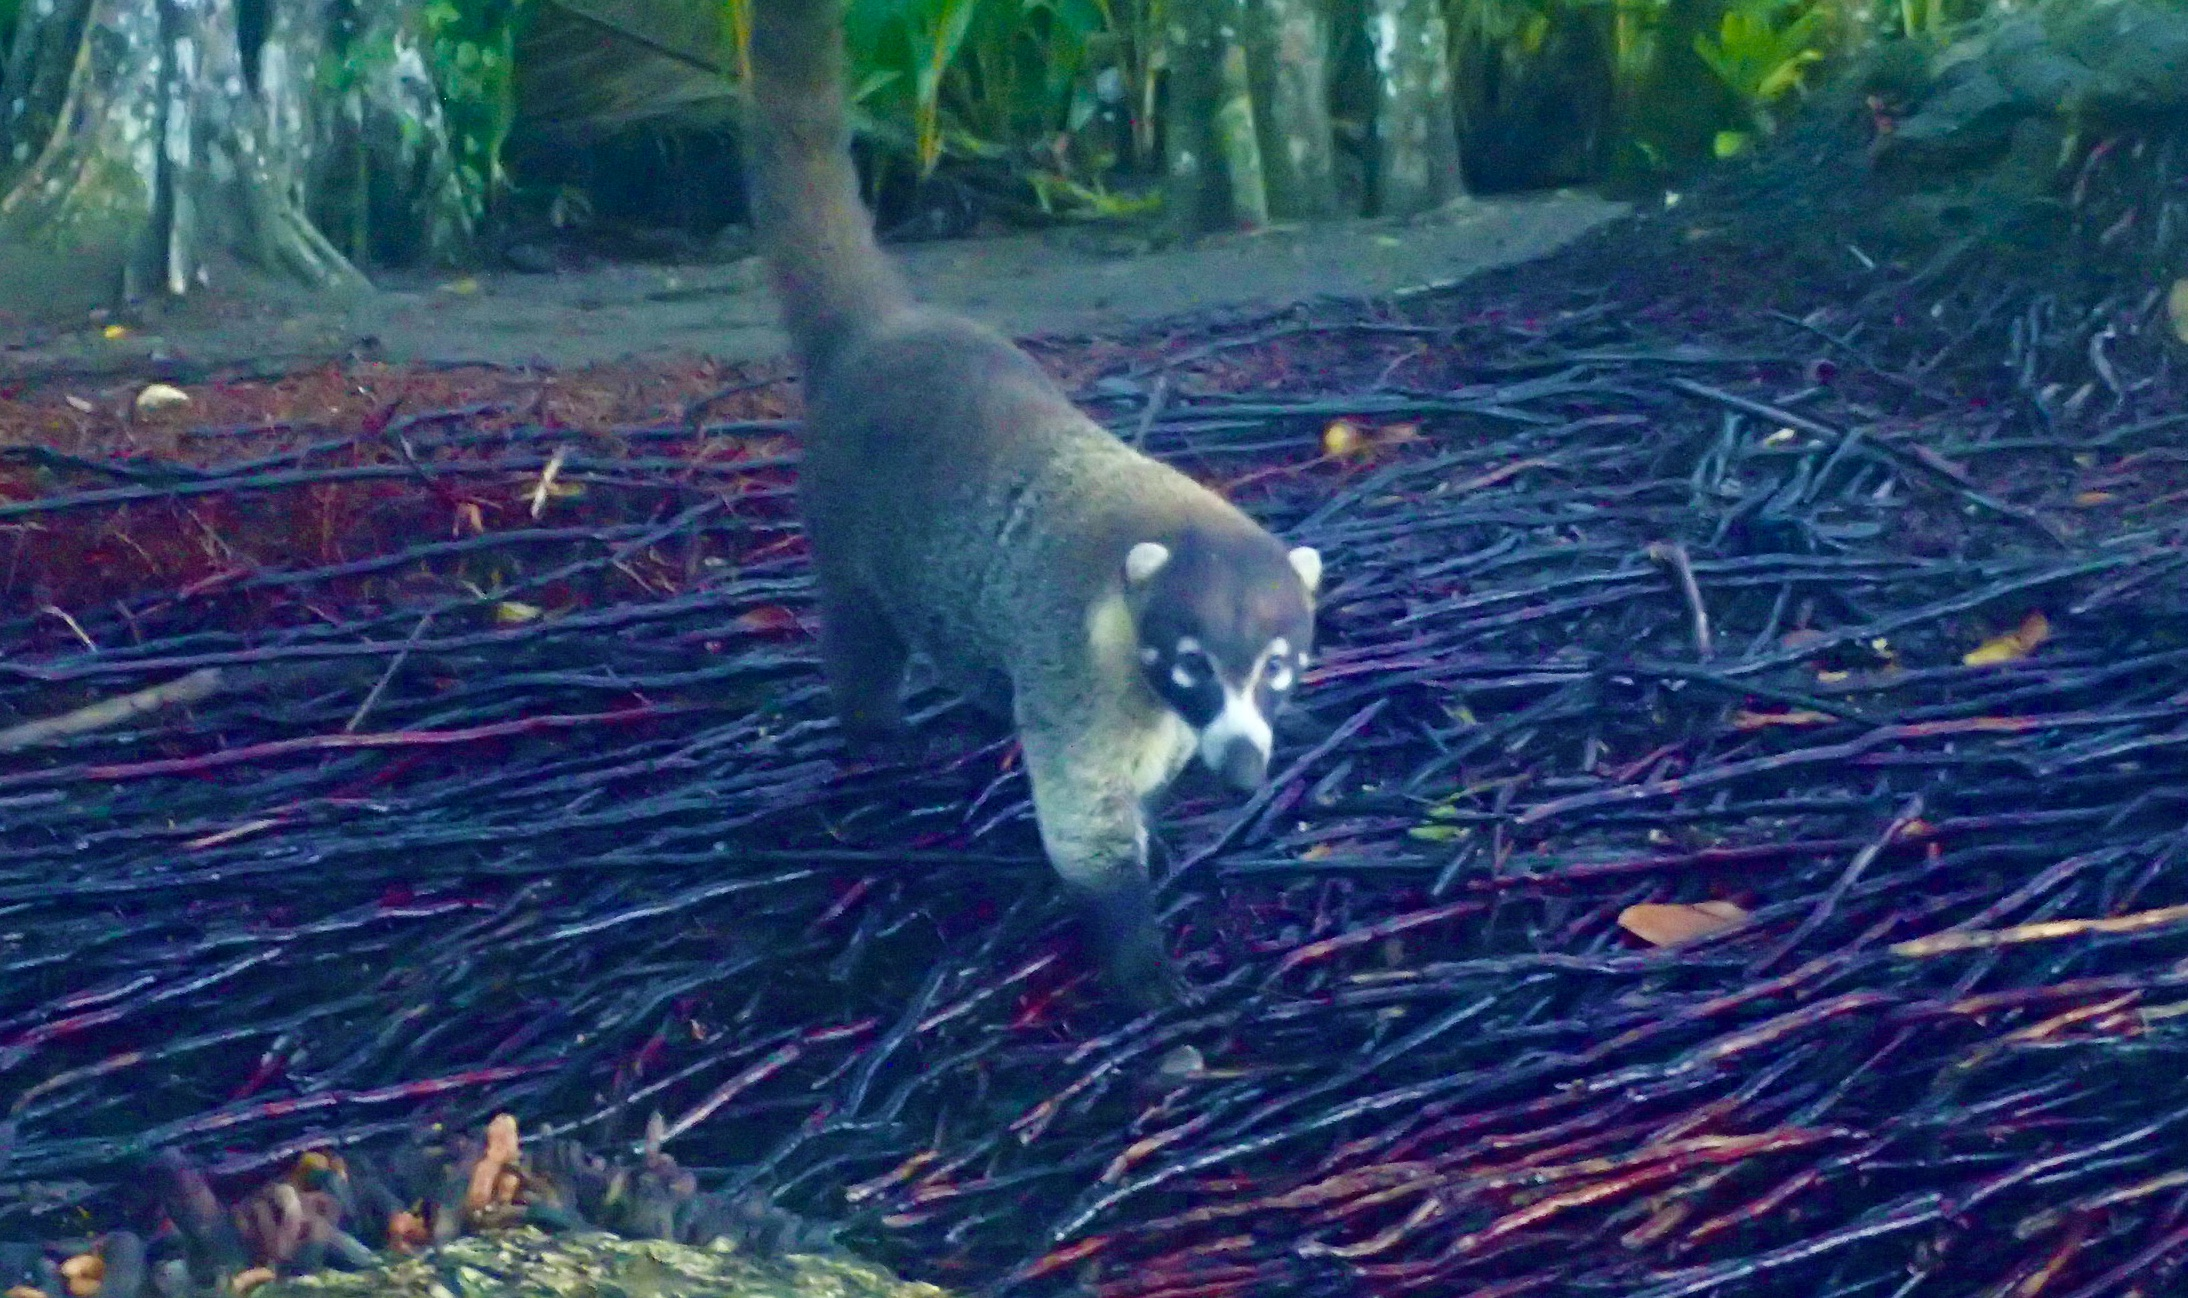 Coati, you are wild, what is your problem coming up to me like this??